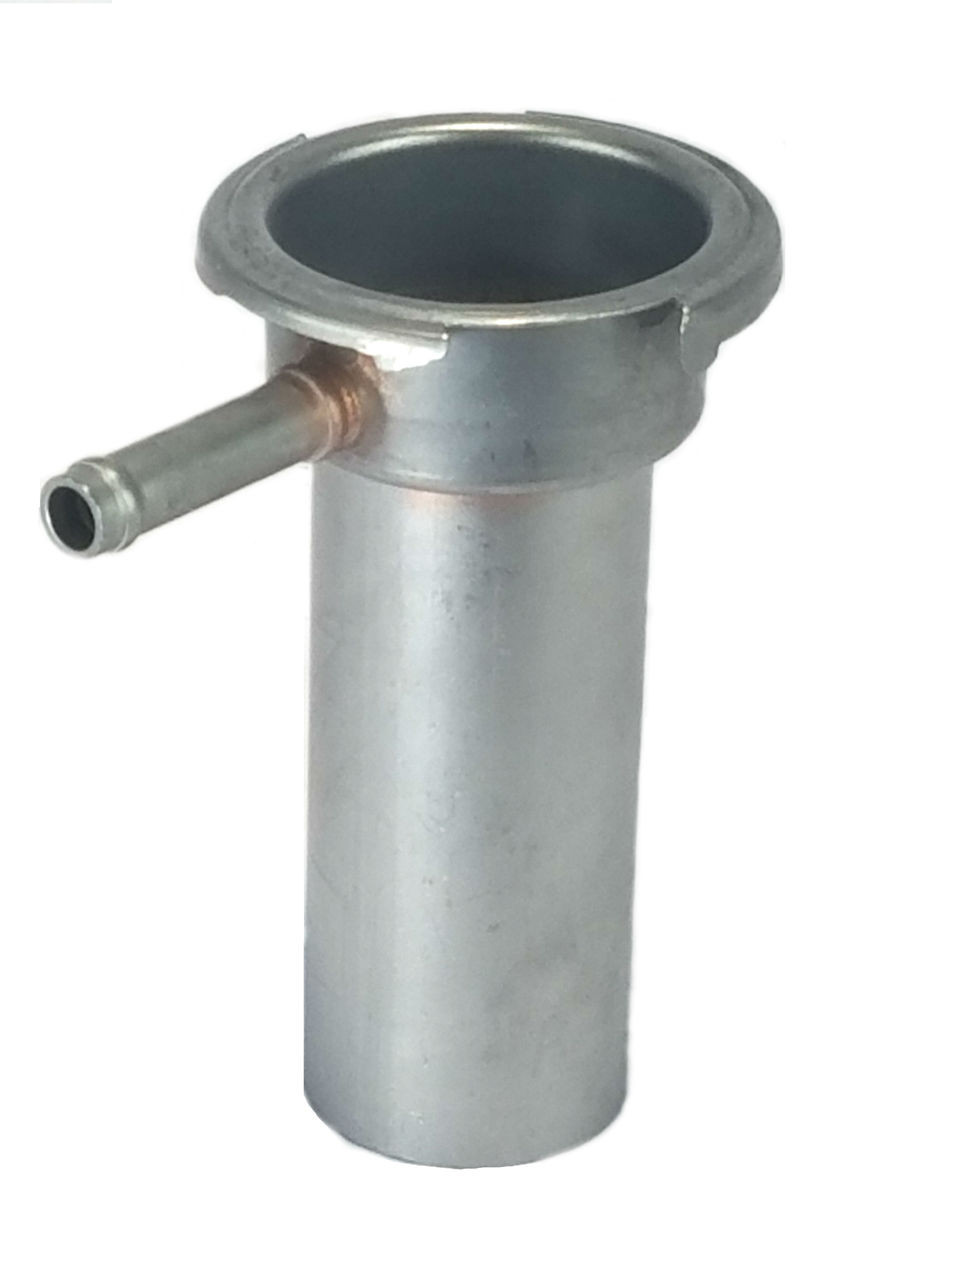 Extended Radiator Surge Tank Filler Cap With Overflow Tube